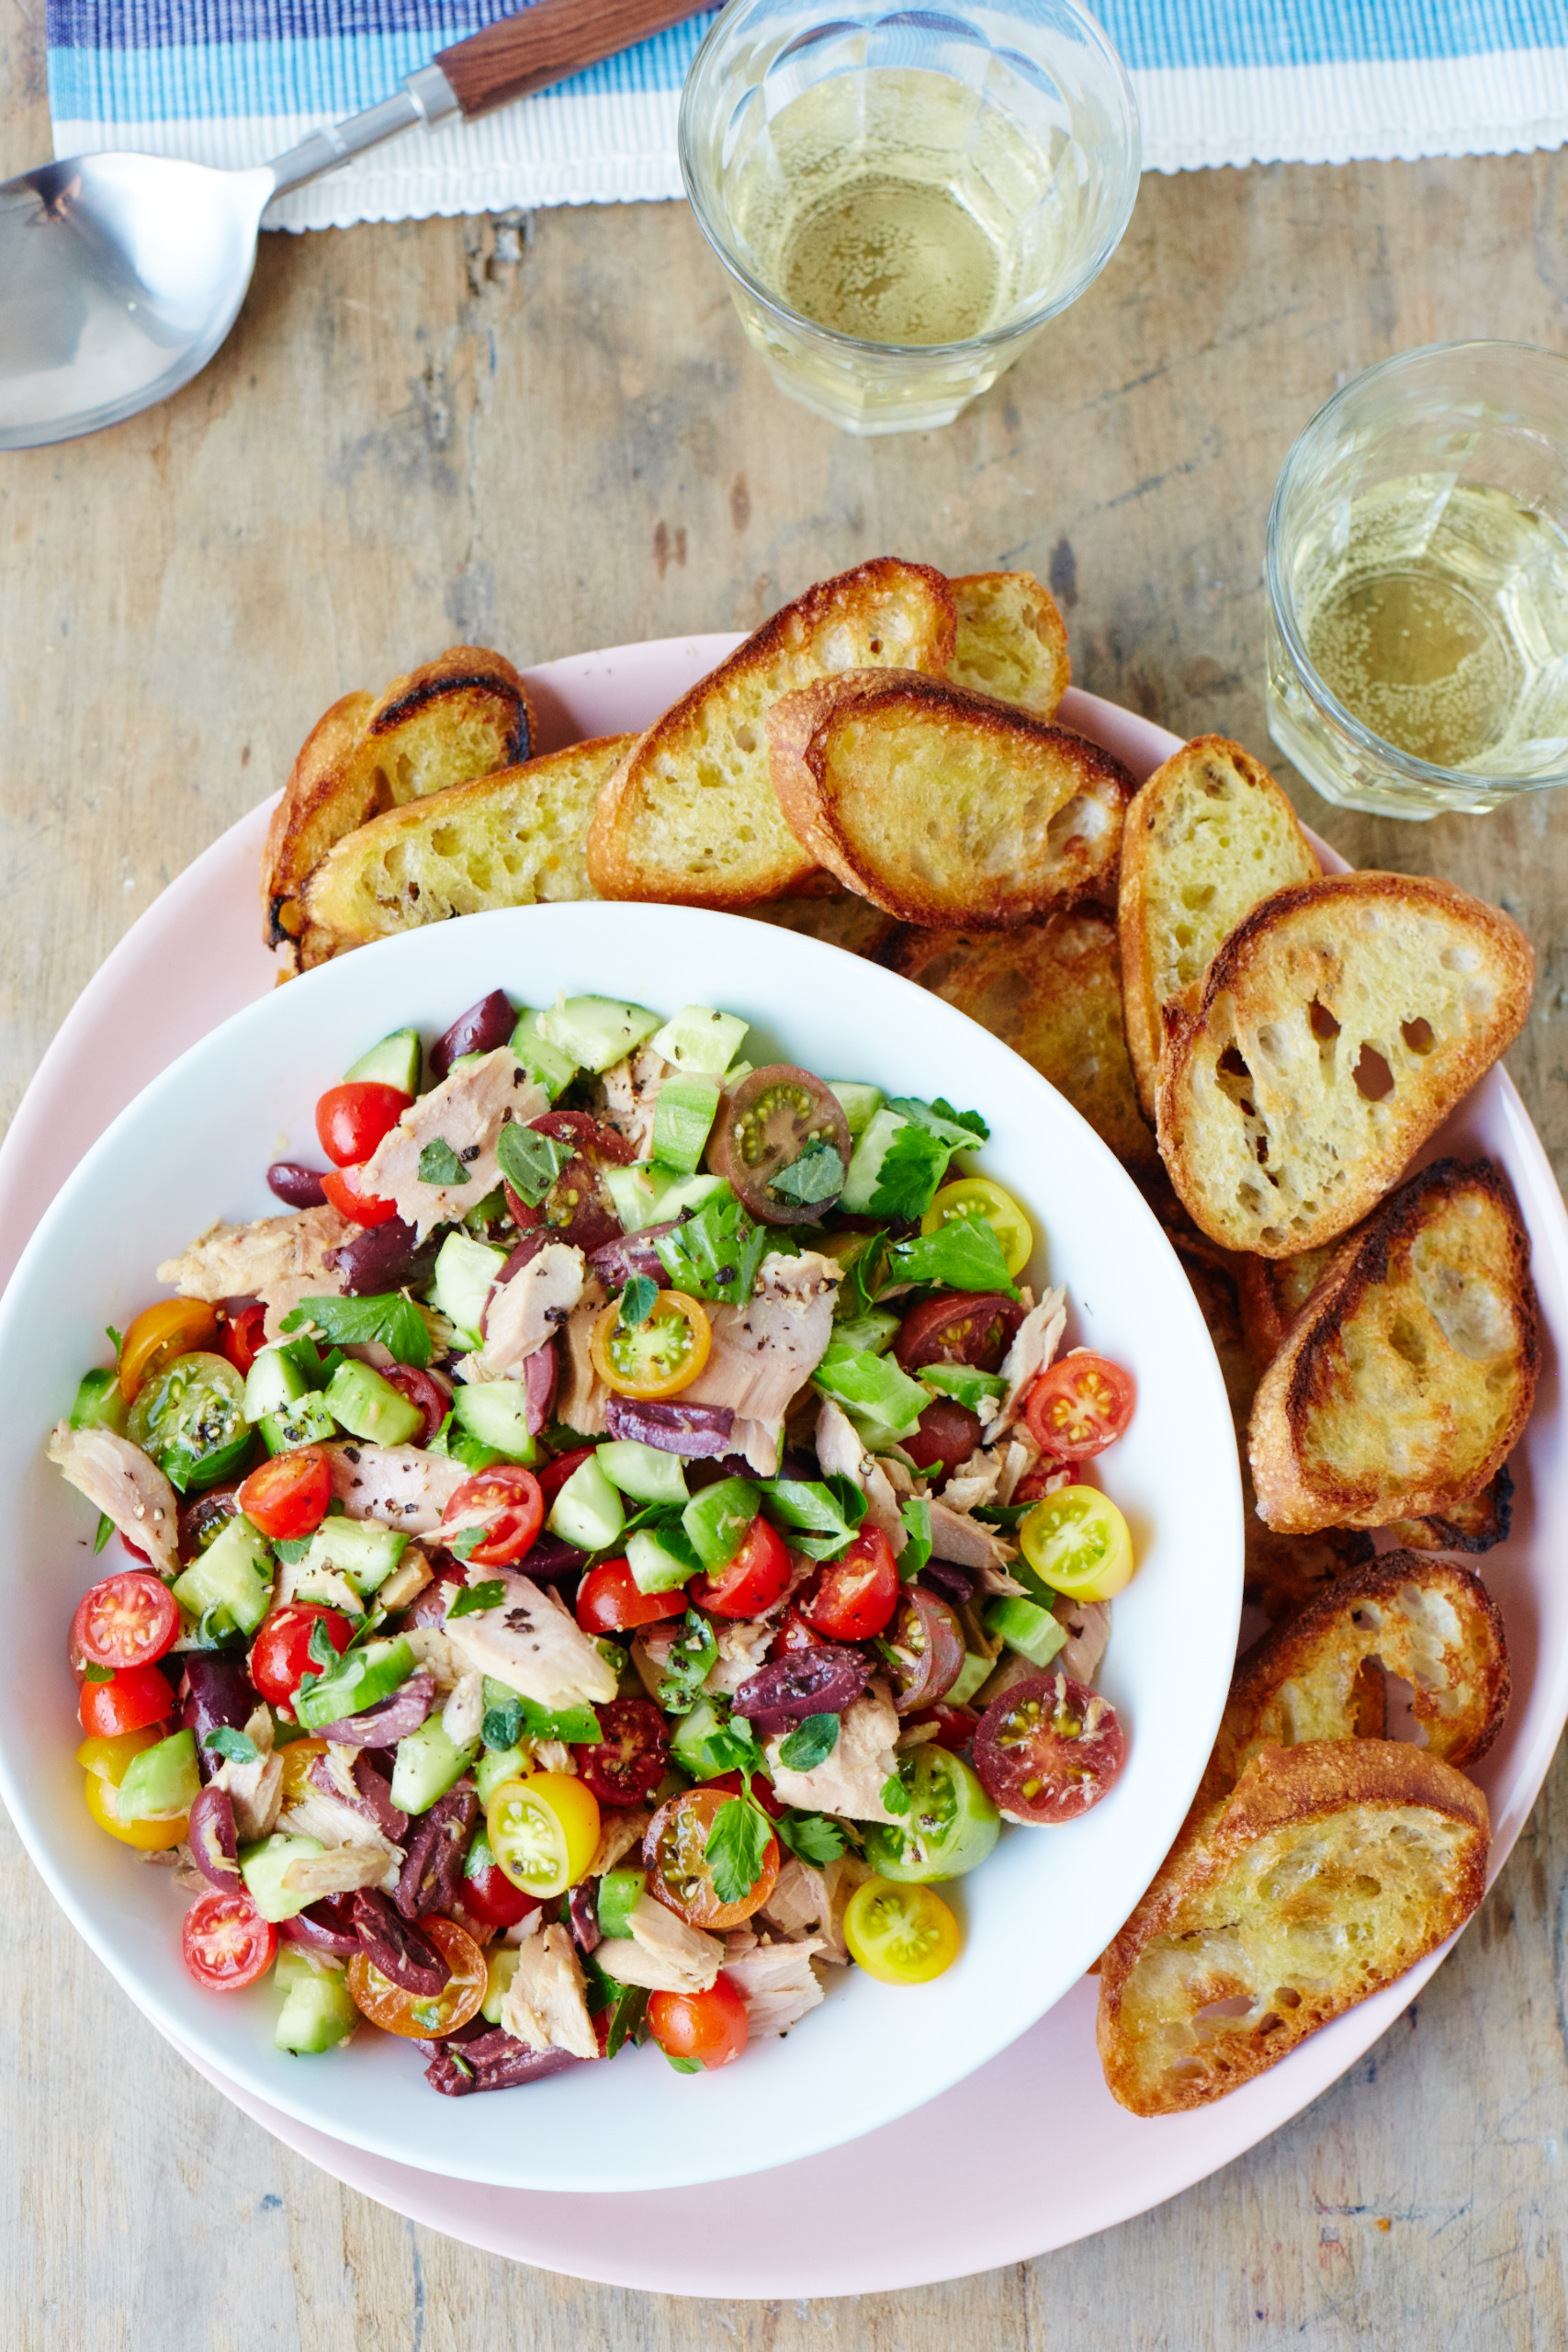 Colorful Mediterranean Recipes to Feel Good About | Kitchn